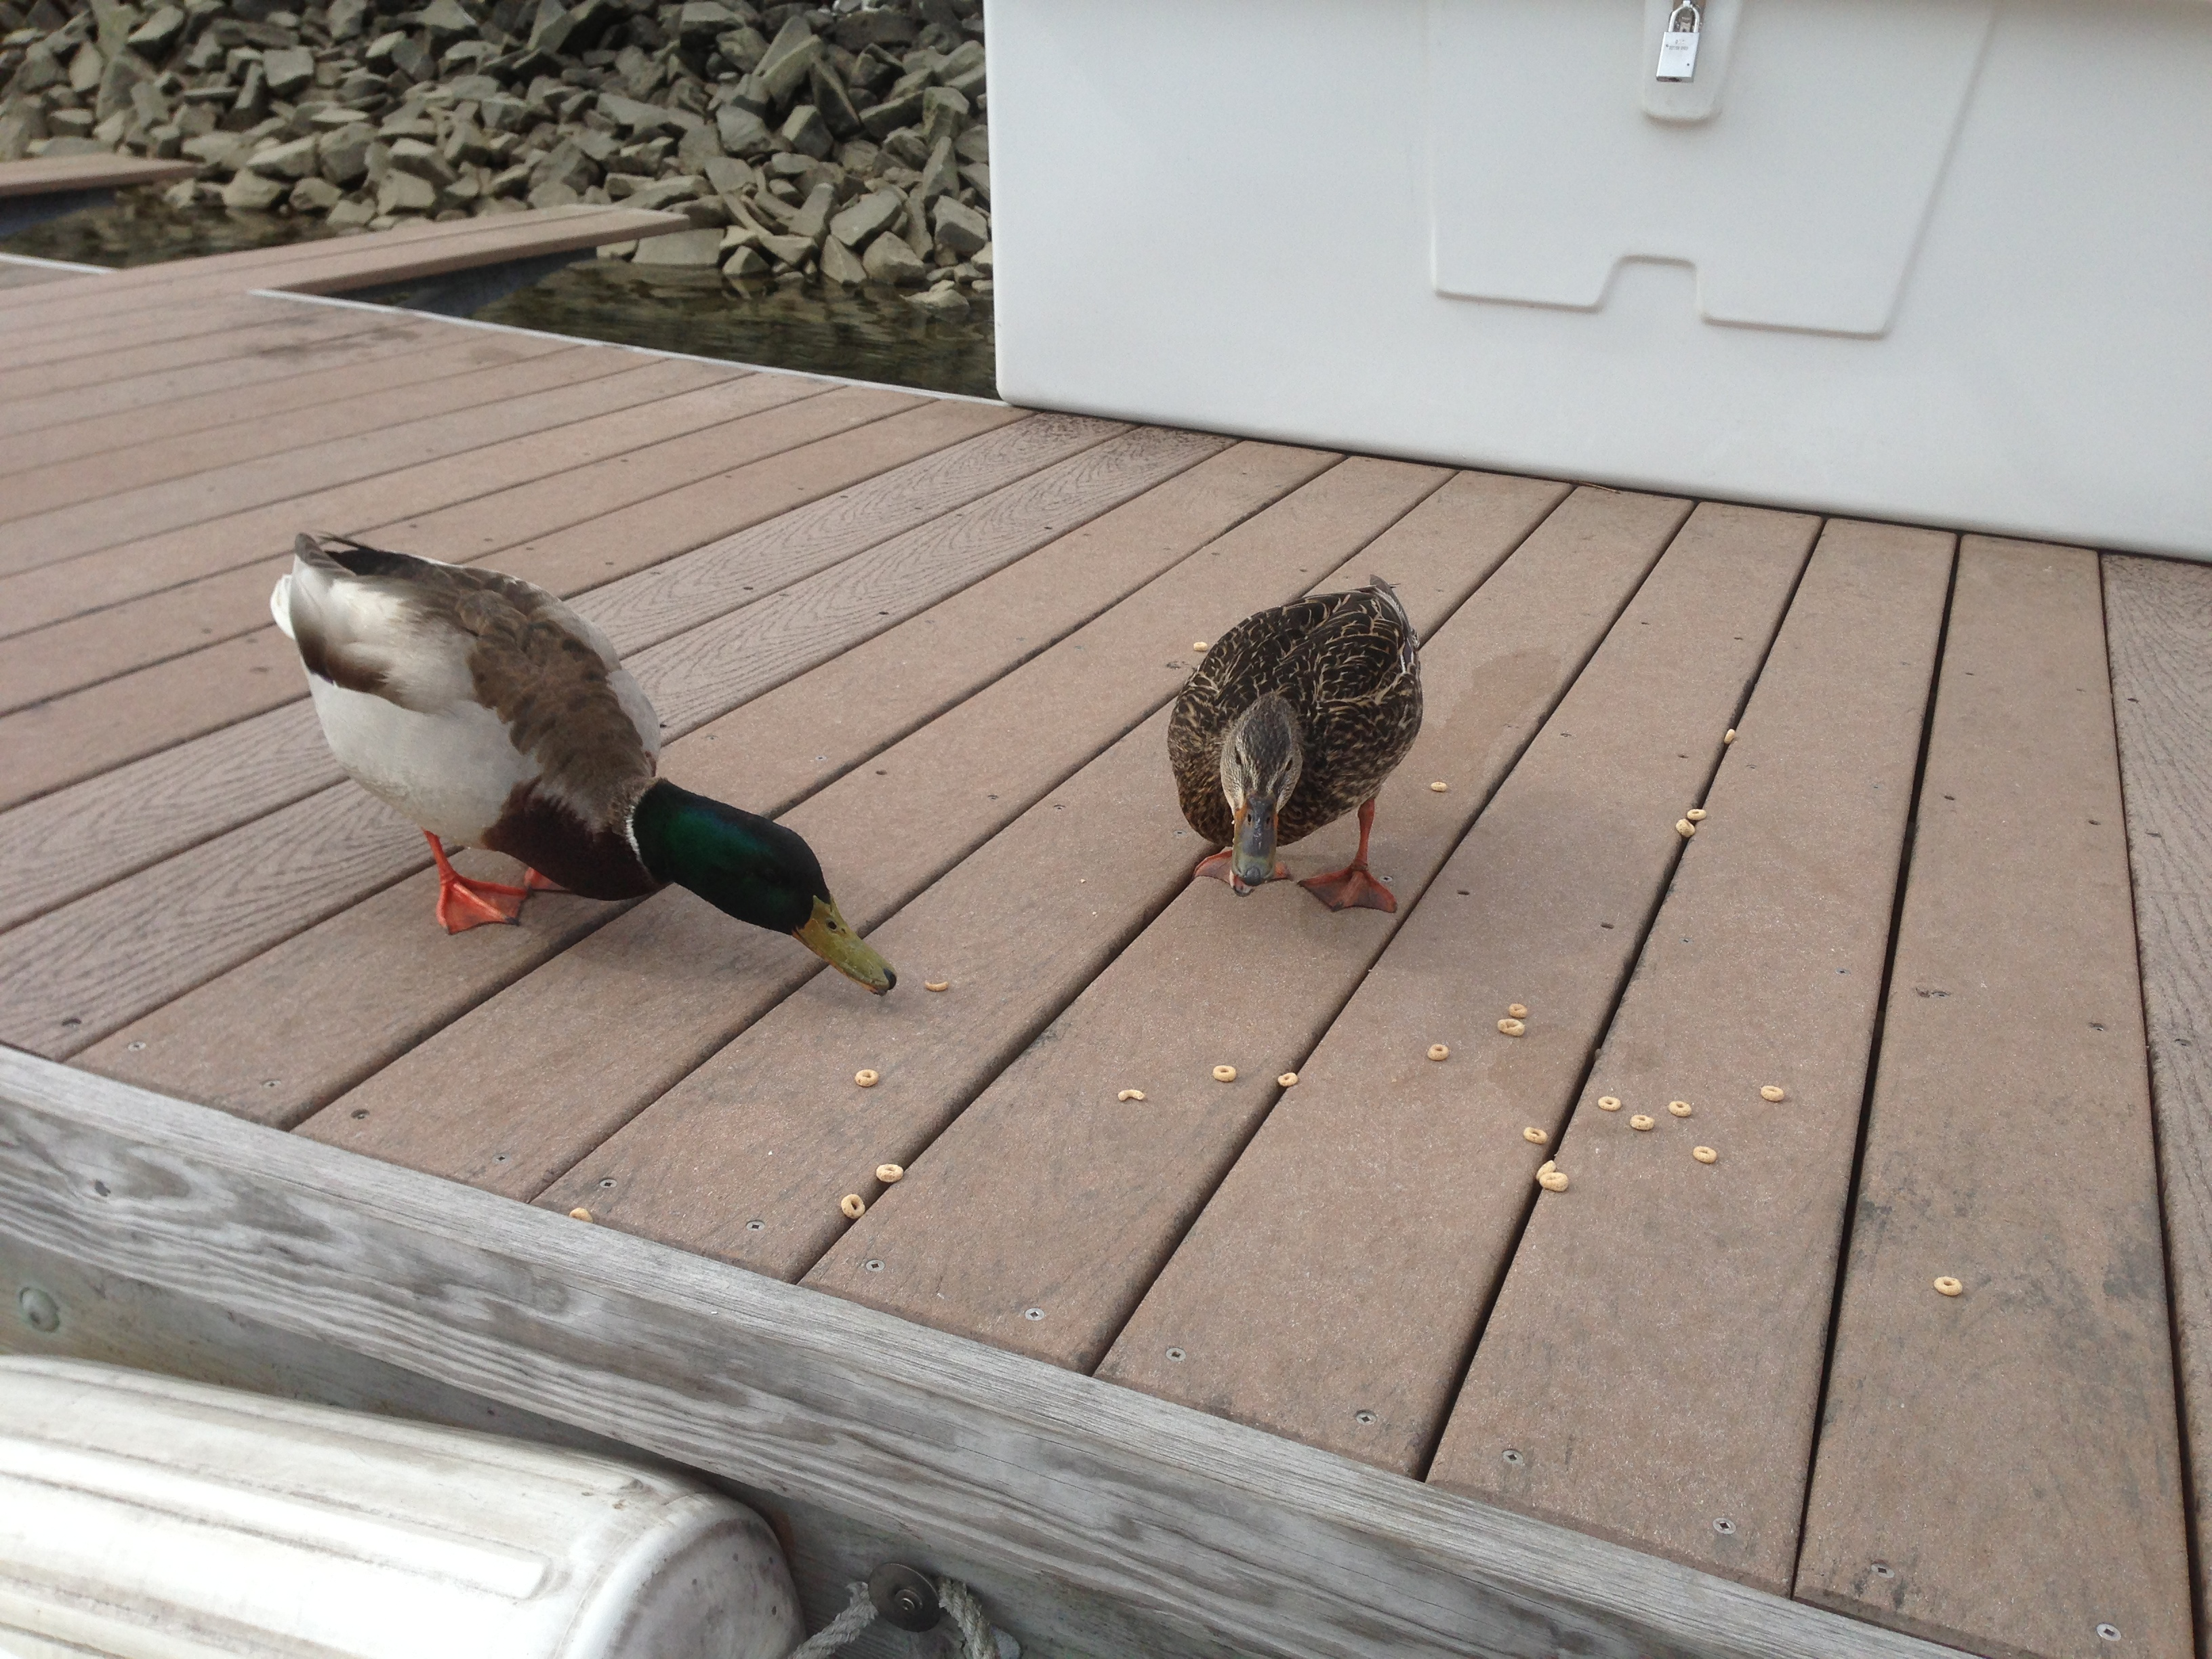 Our I dock ducks.